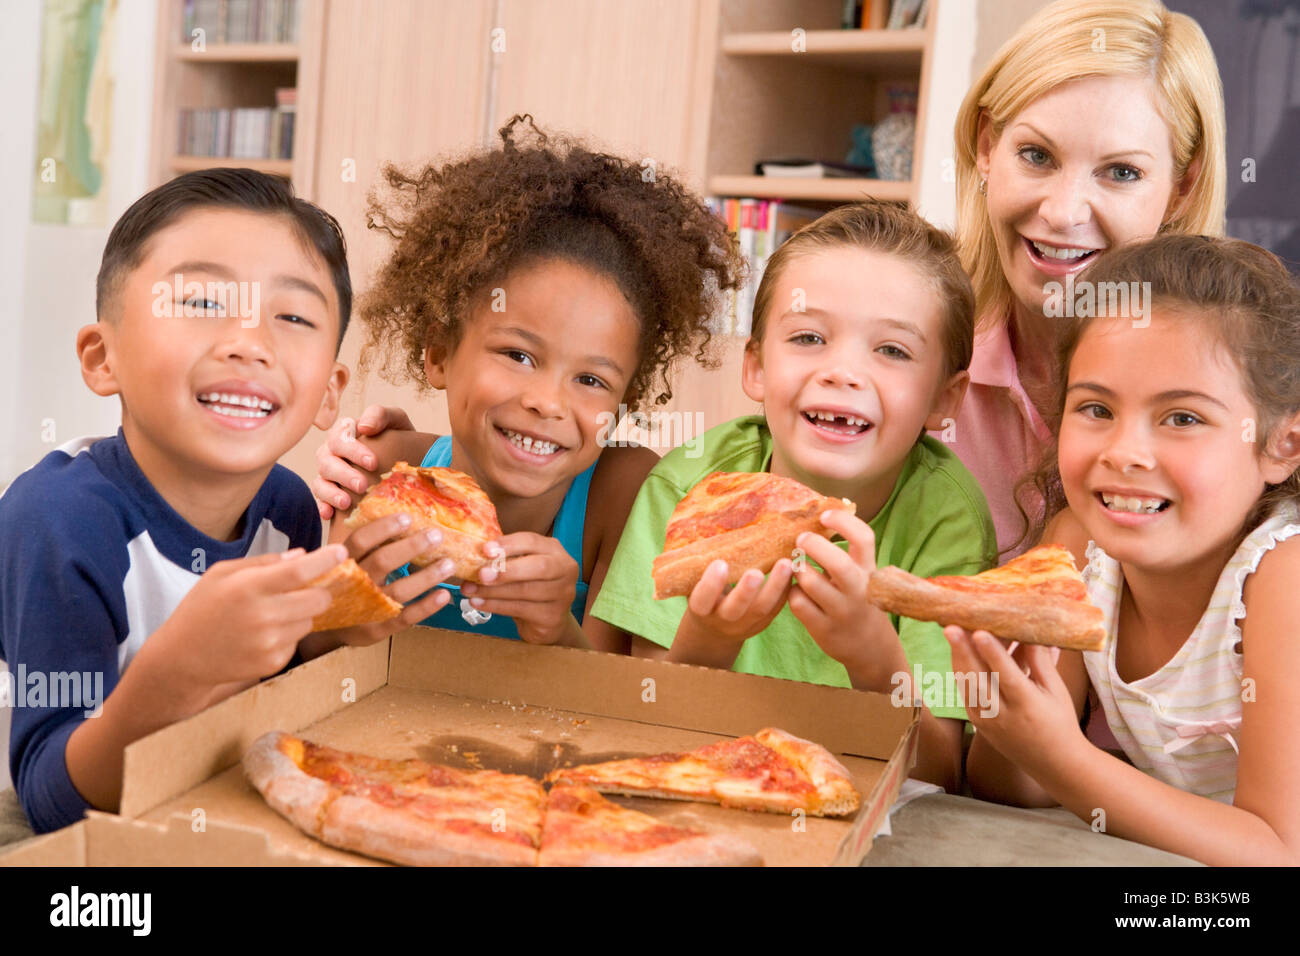 Four young children indoors with woman eating pizza smiling - Stock Image